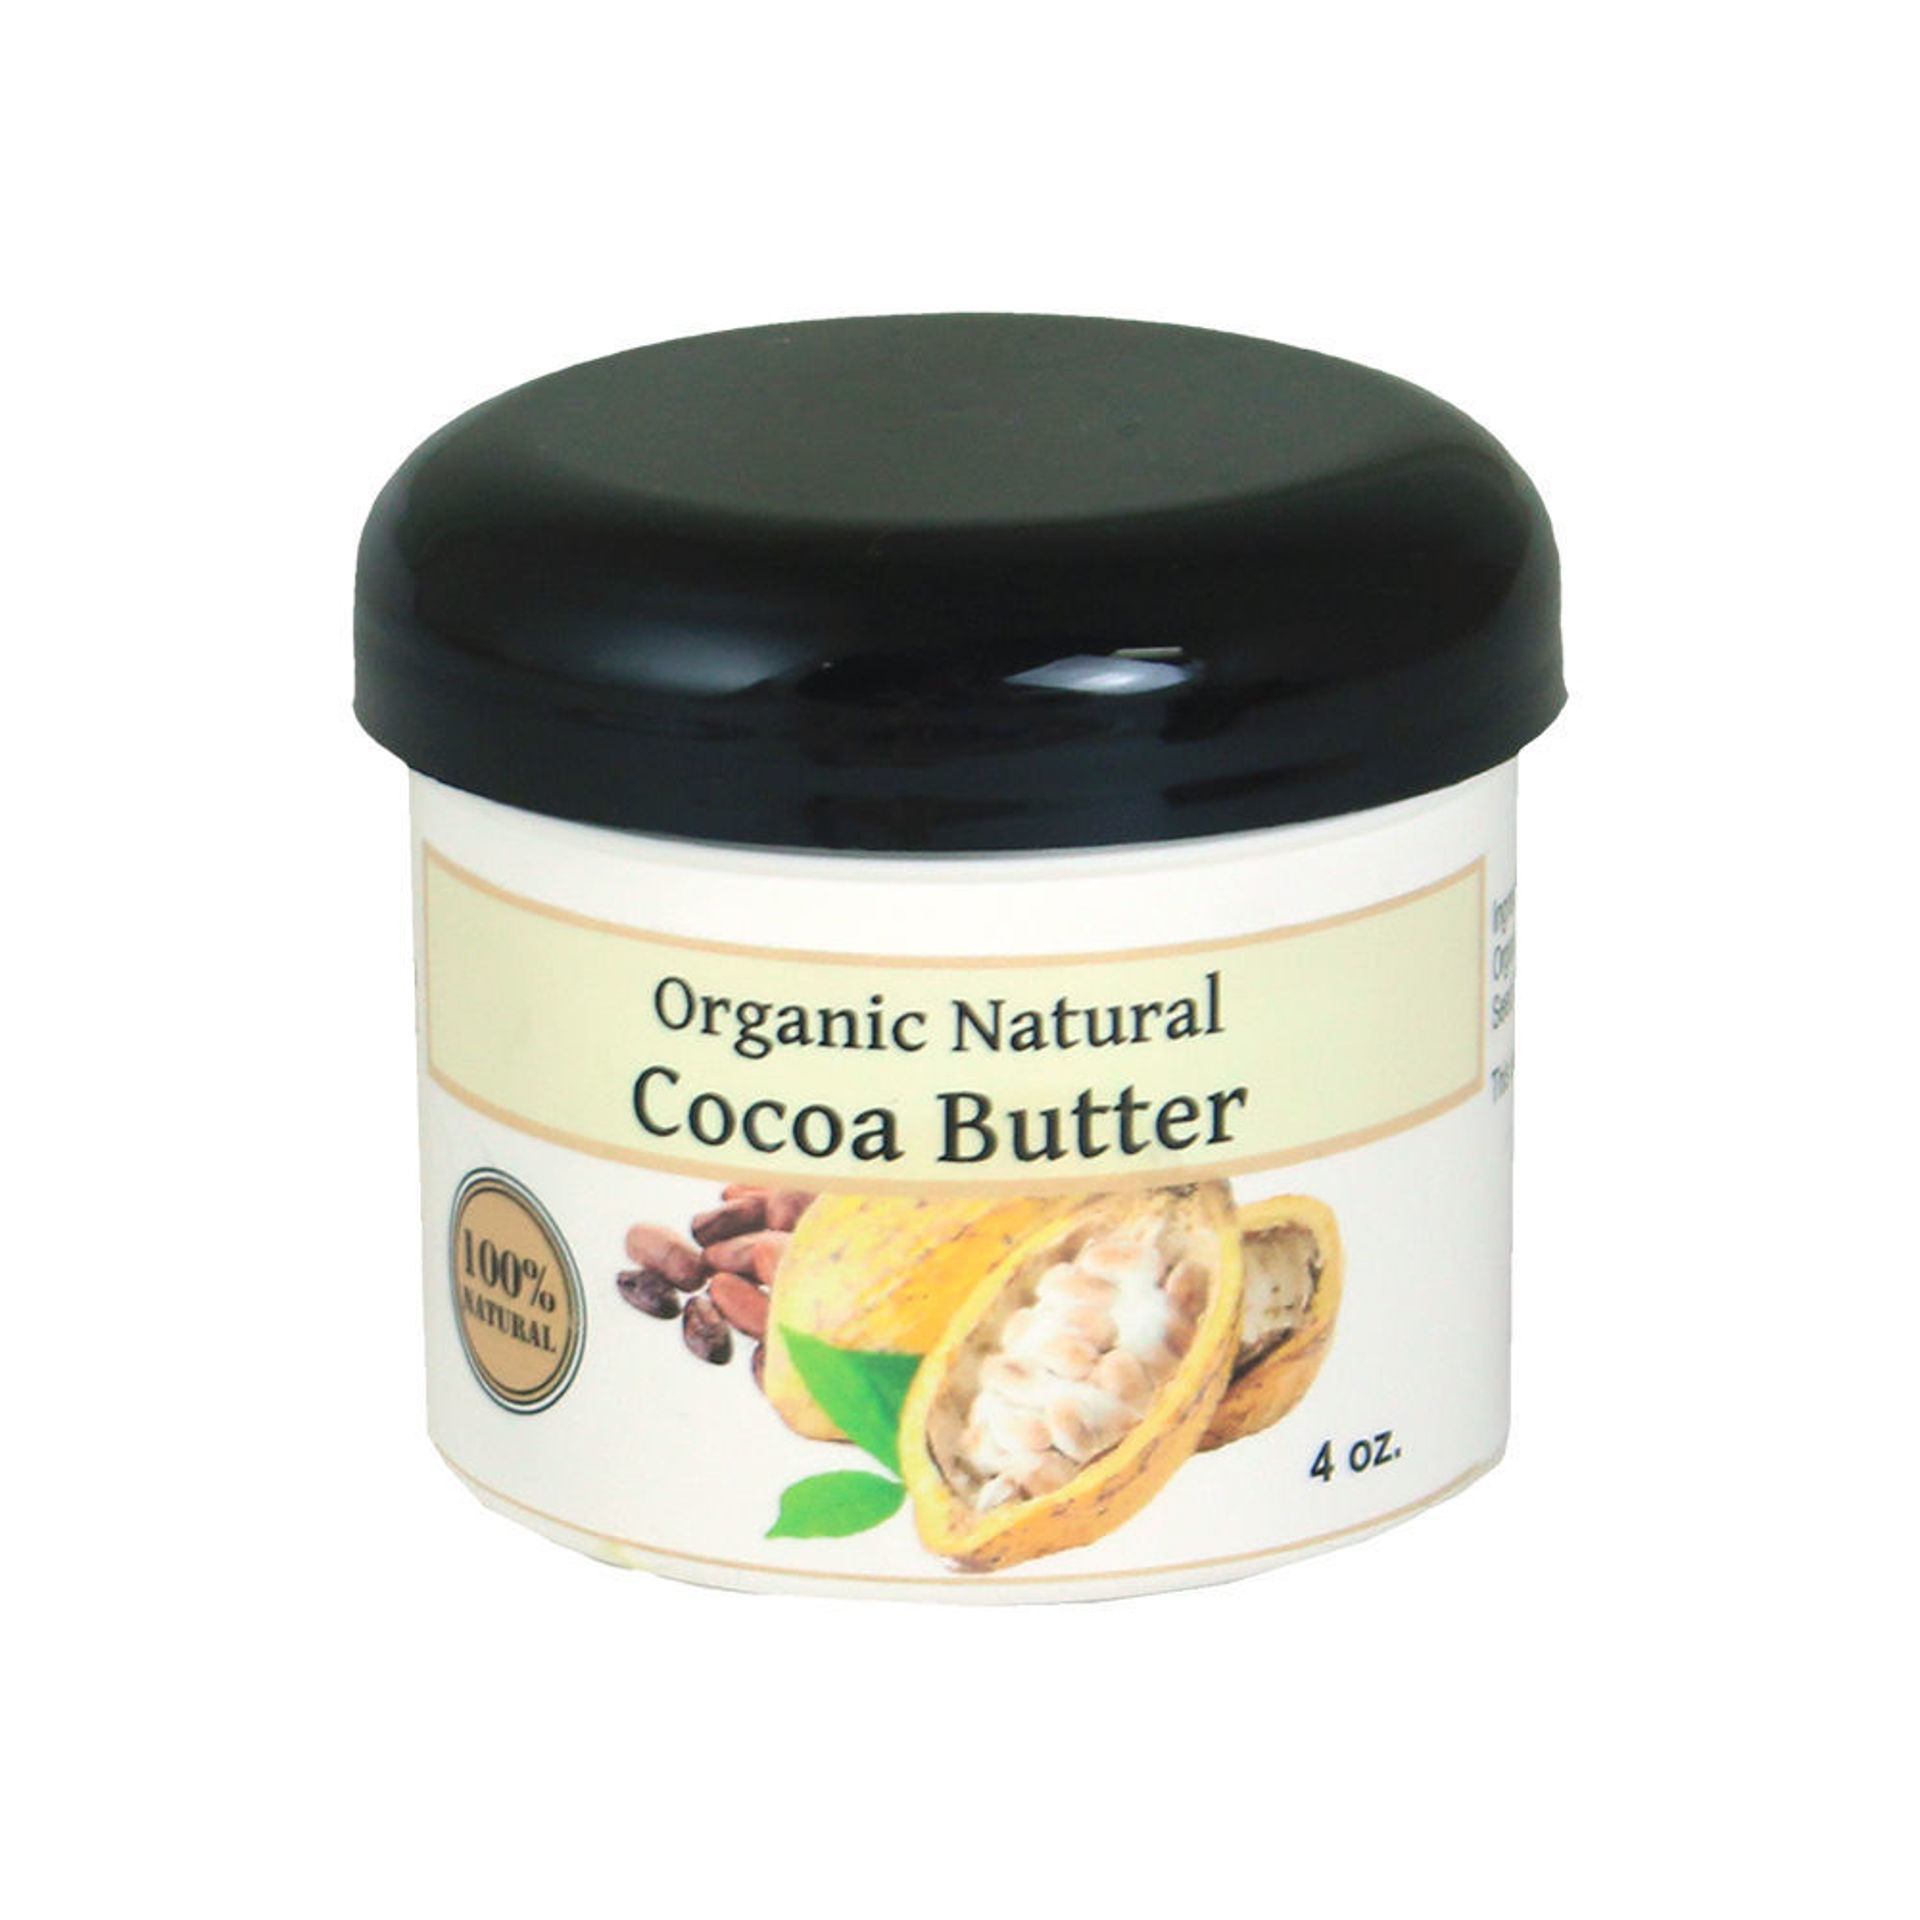 Picture of Organic Cocoa Butter - 4 oz.